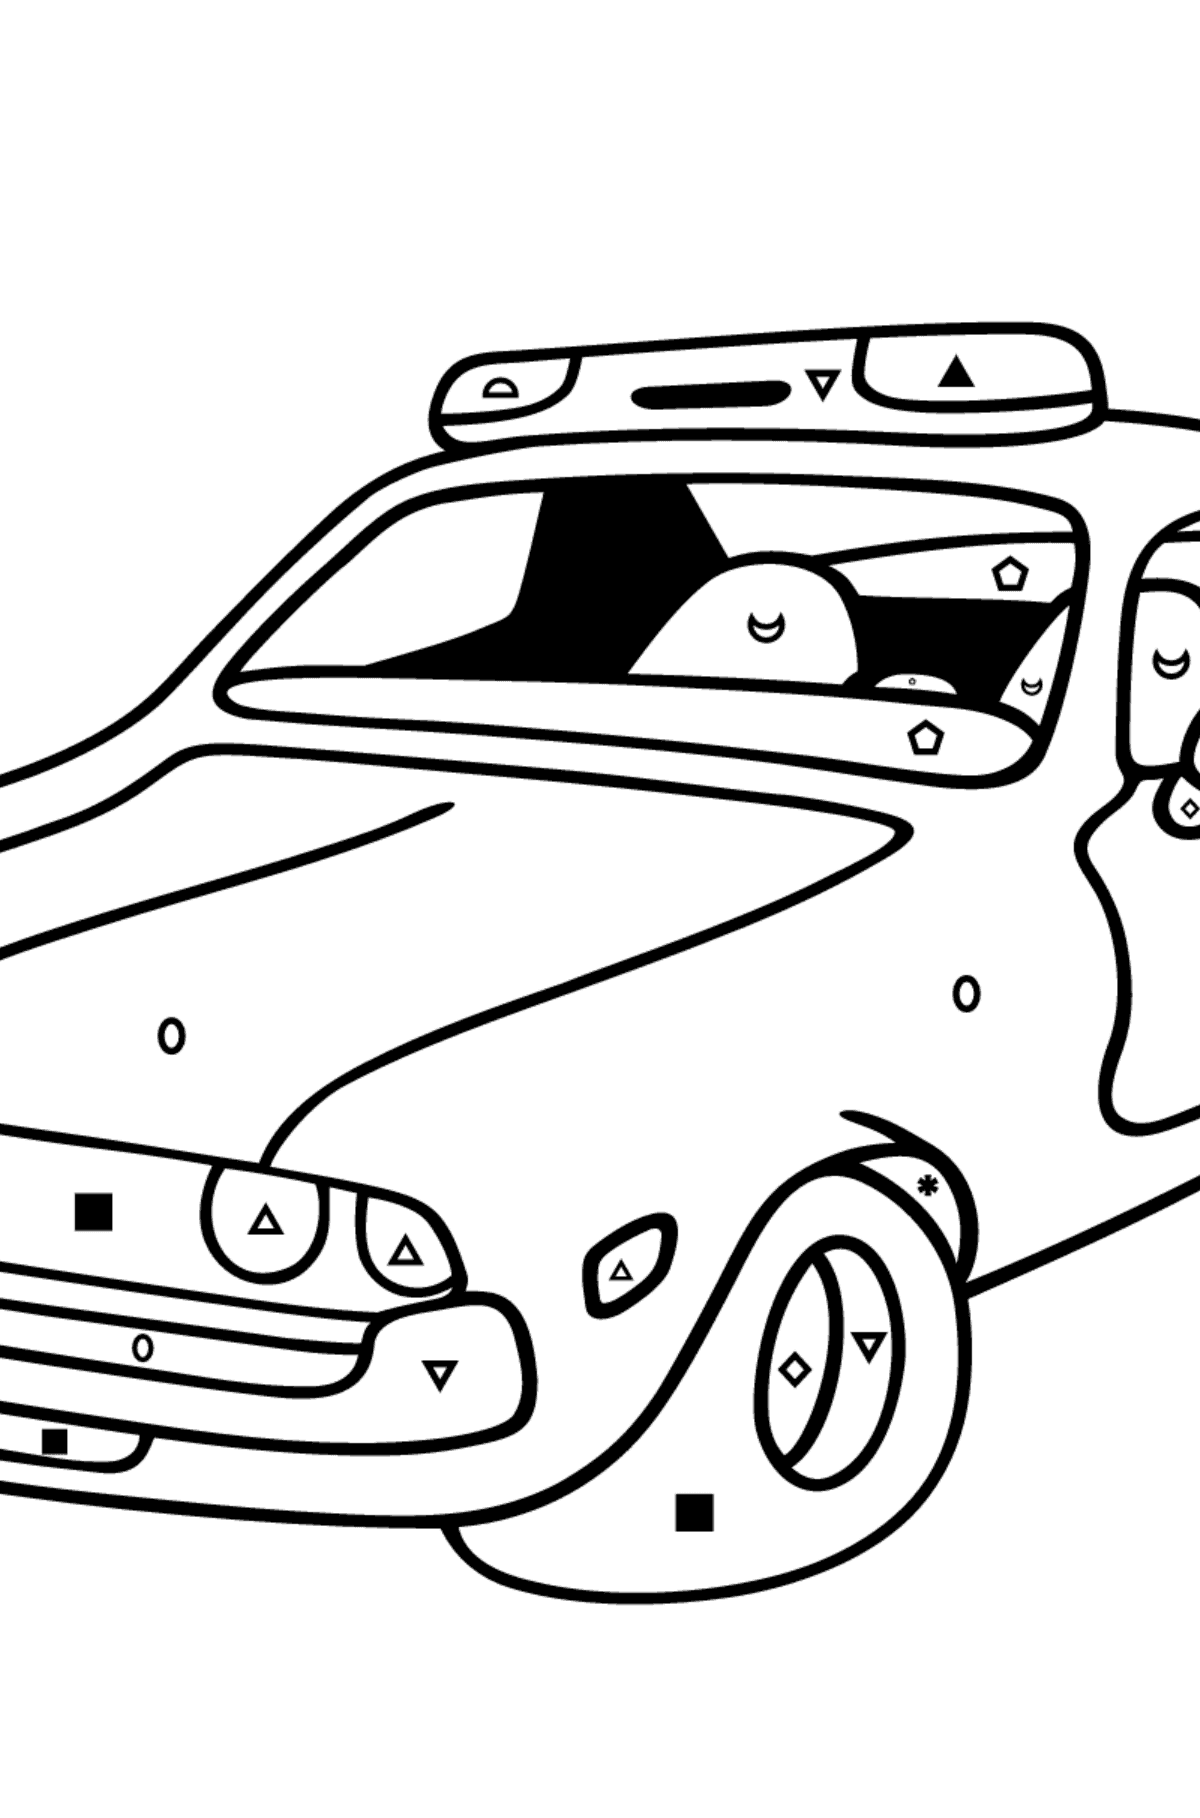 Coloring Page - A Red Police Car for Children  - Color by Symbols and Geometric Shapes